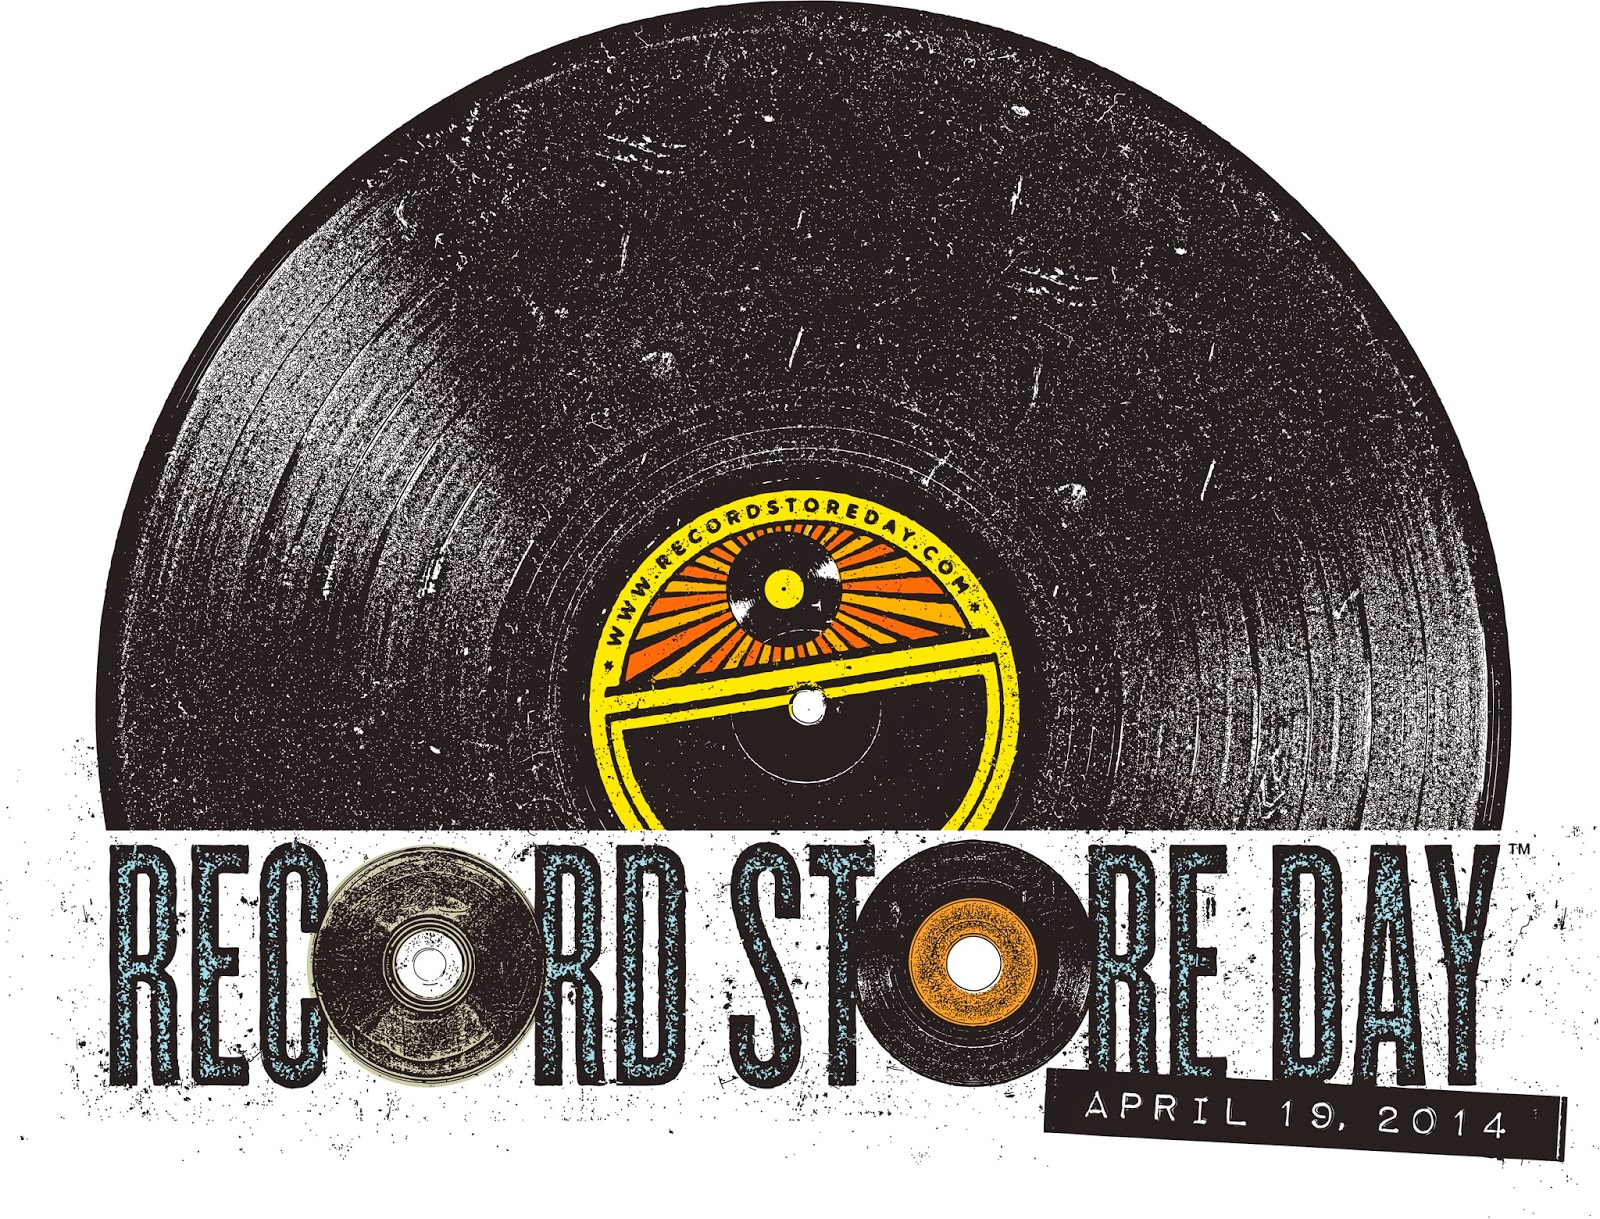 Top 5 Record Store Day 2014 releases.